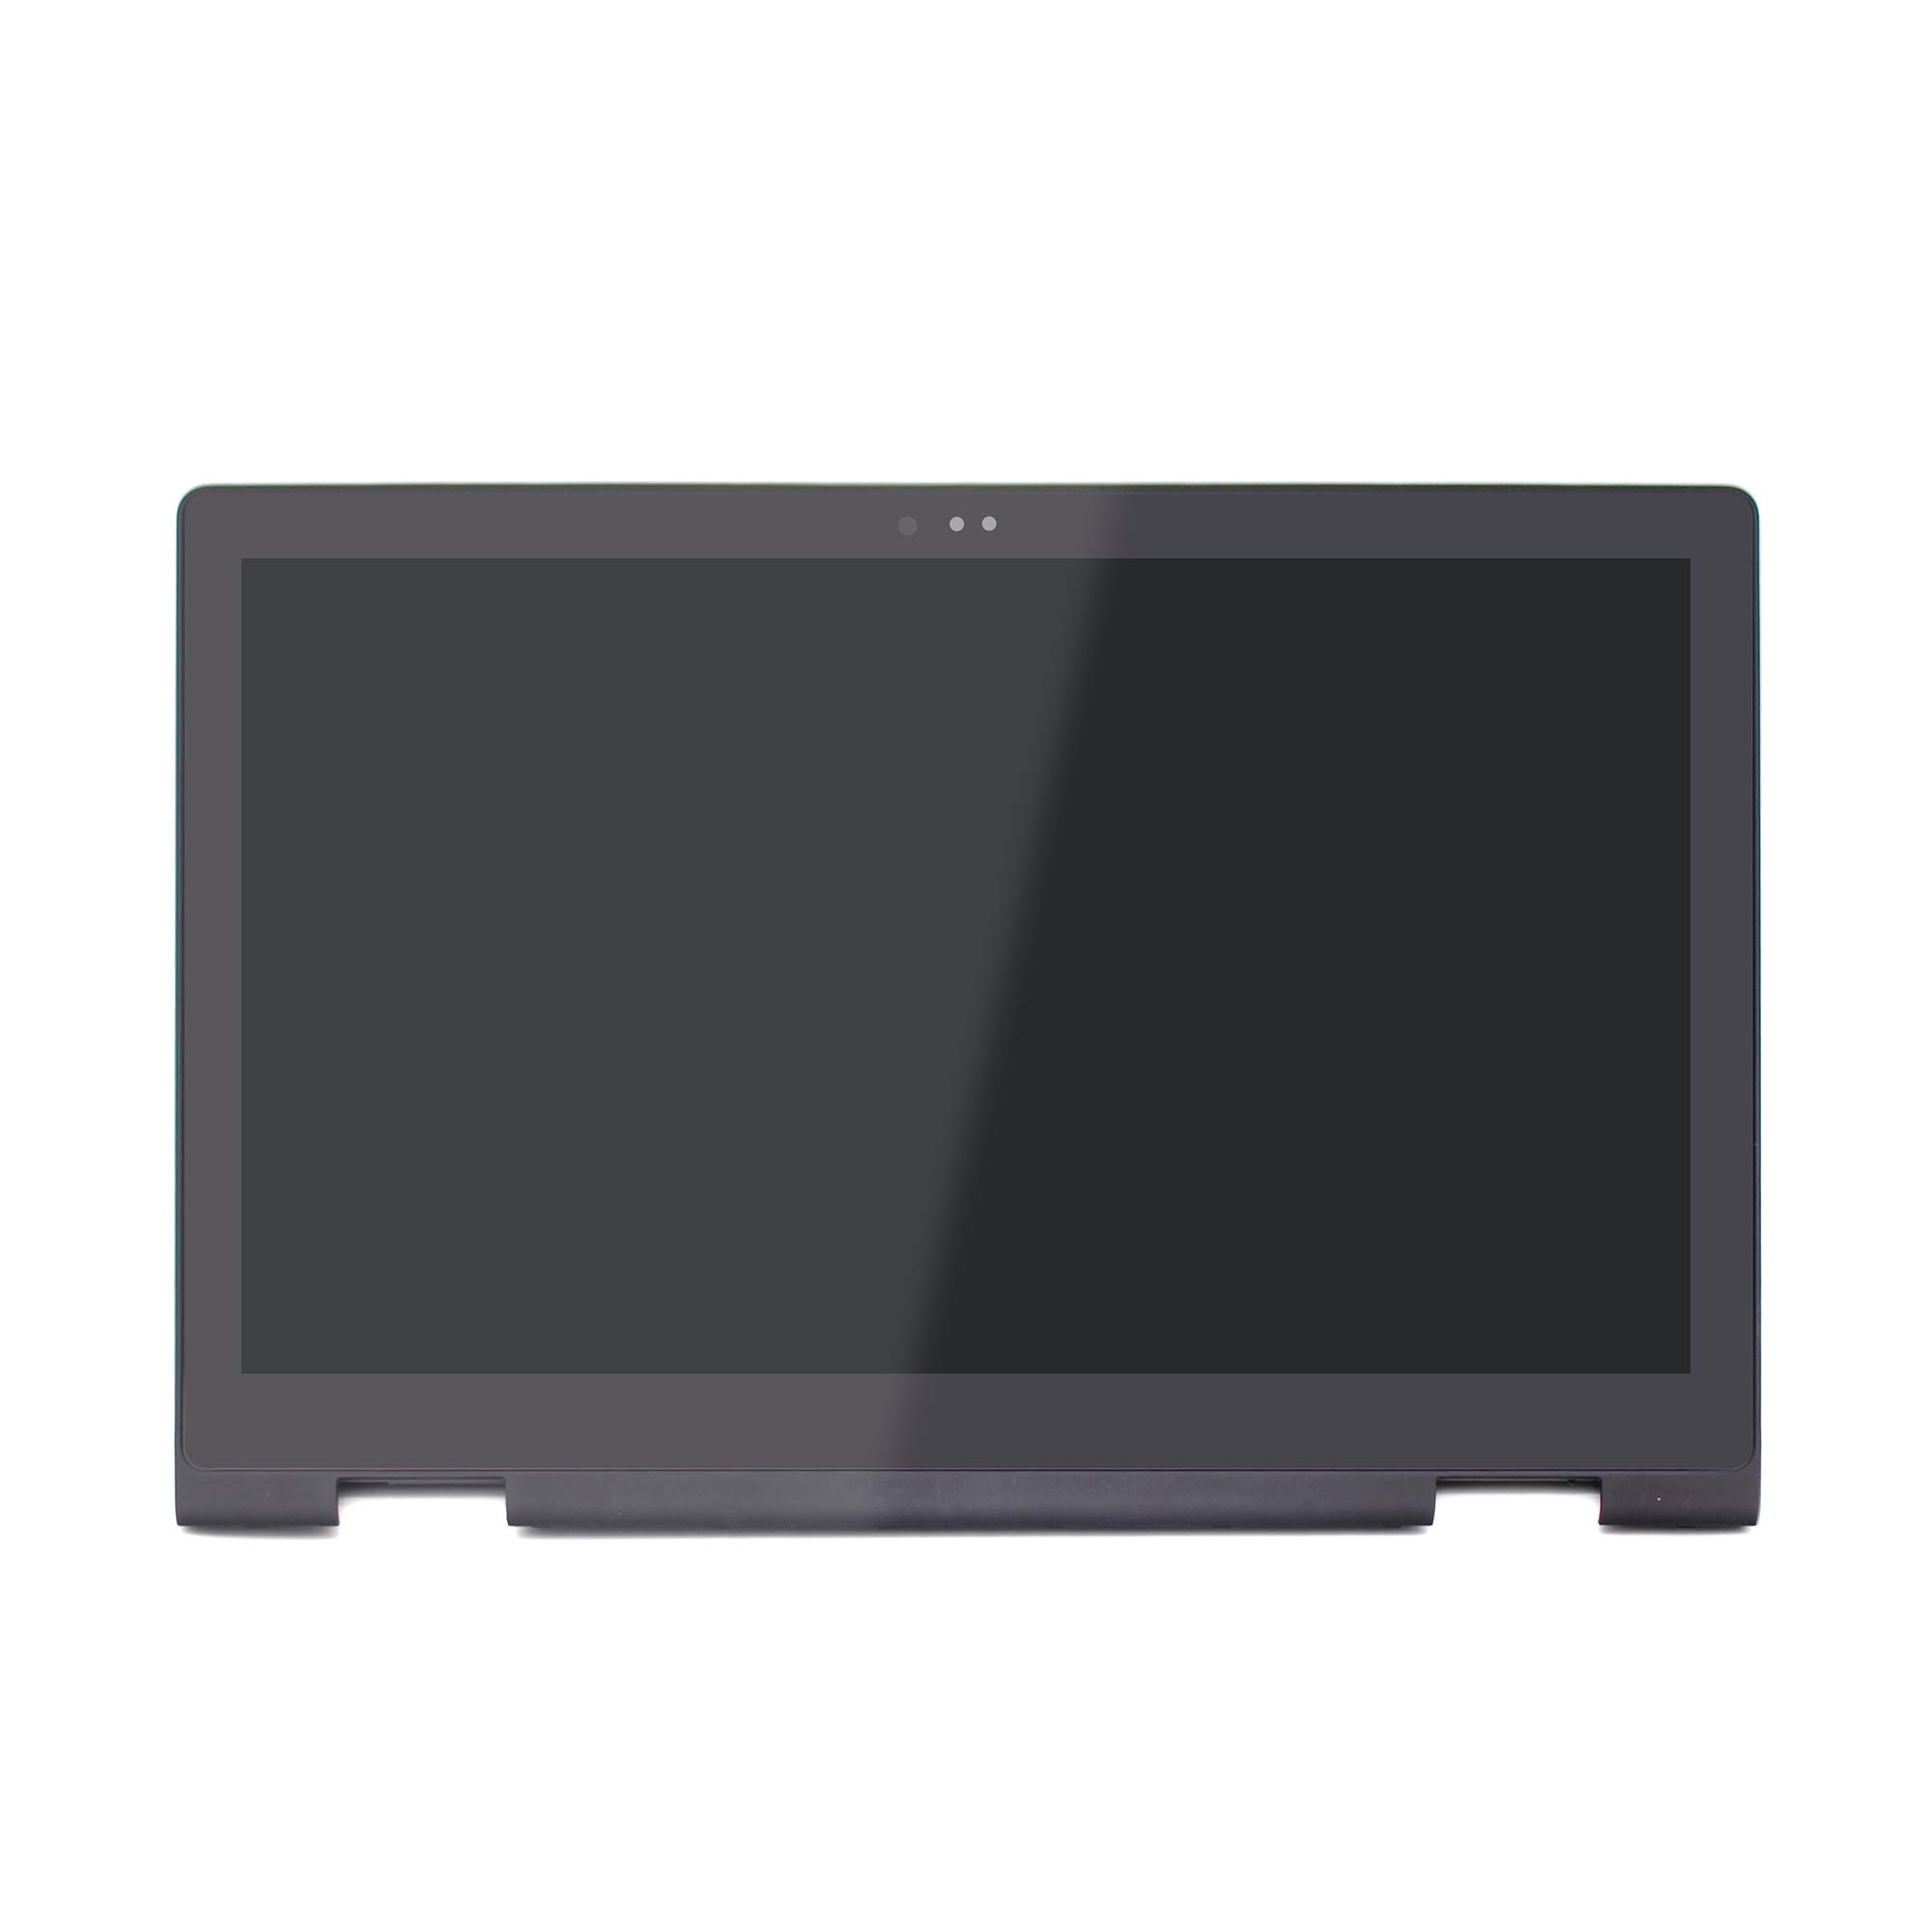 LCDOLED Compatible 13.3 inch FullHD 1080P LP133WF2 L2 LED LCD Display Touch Screen Digitizer Assembly SP Bezel Replacement for Dell Inspiron 13 7000 Series 7347 7348 7359 P57G002